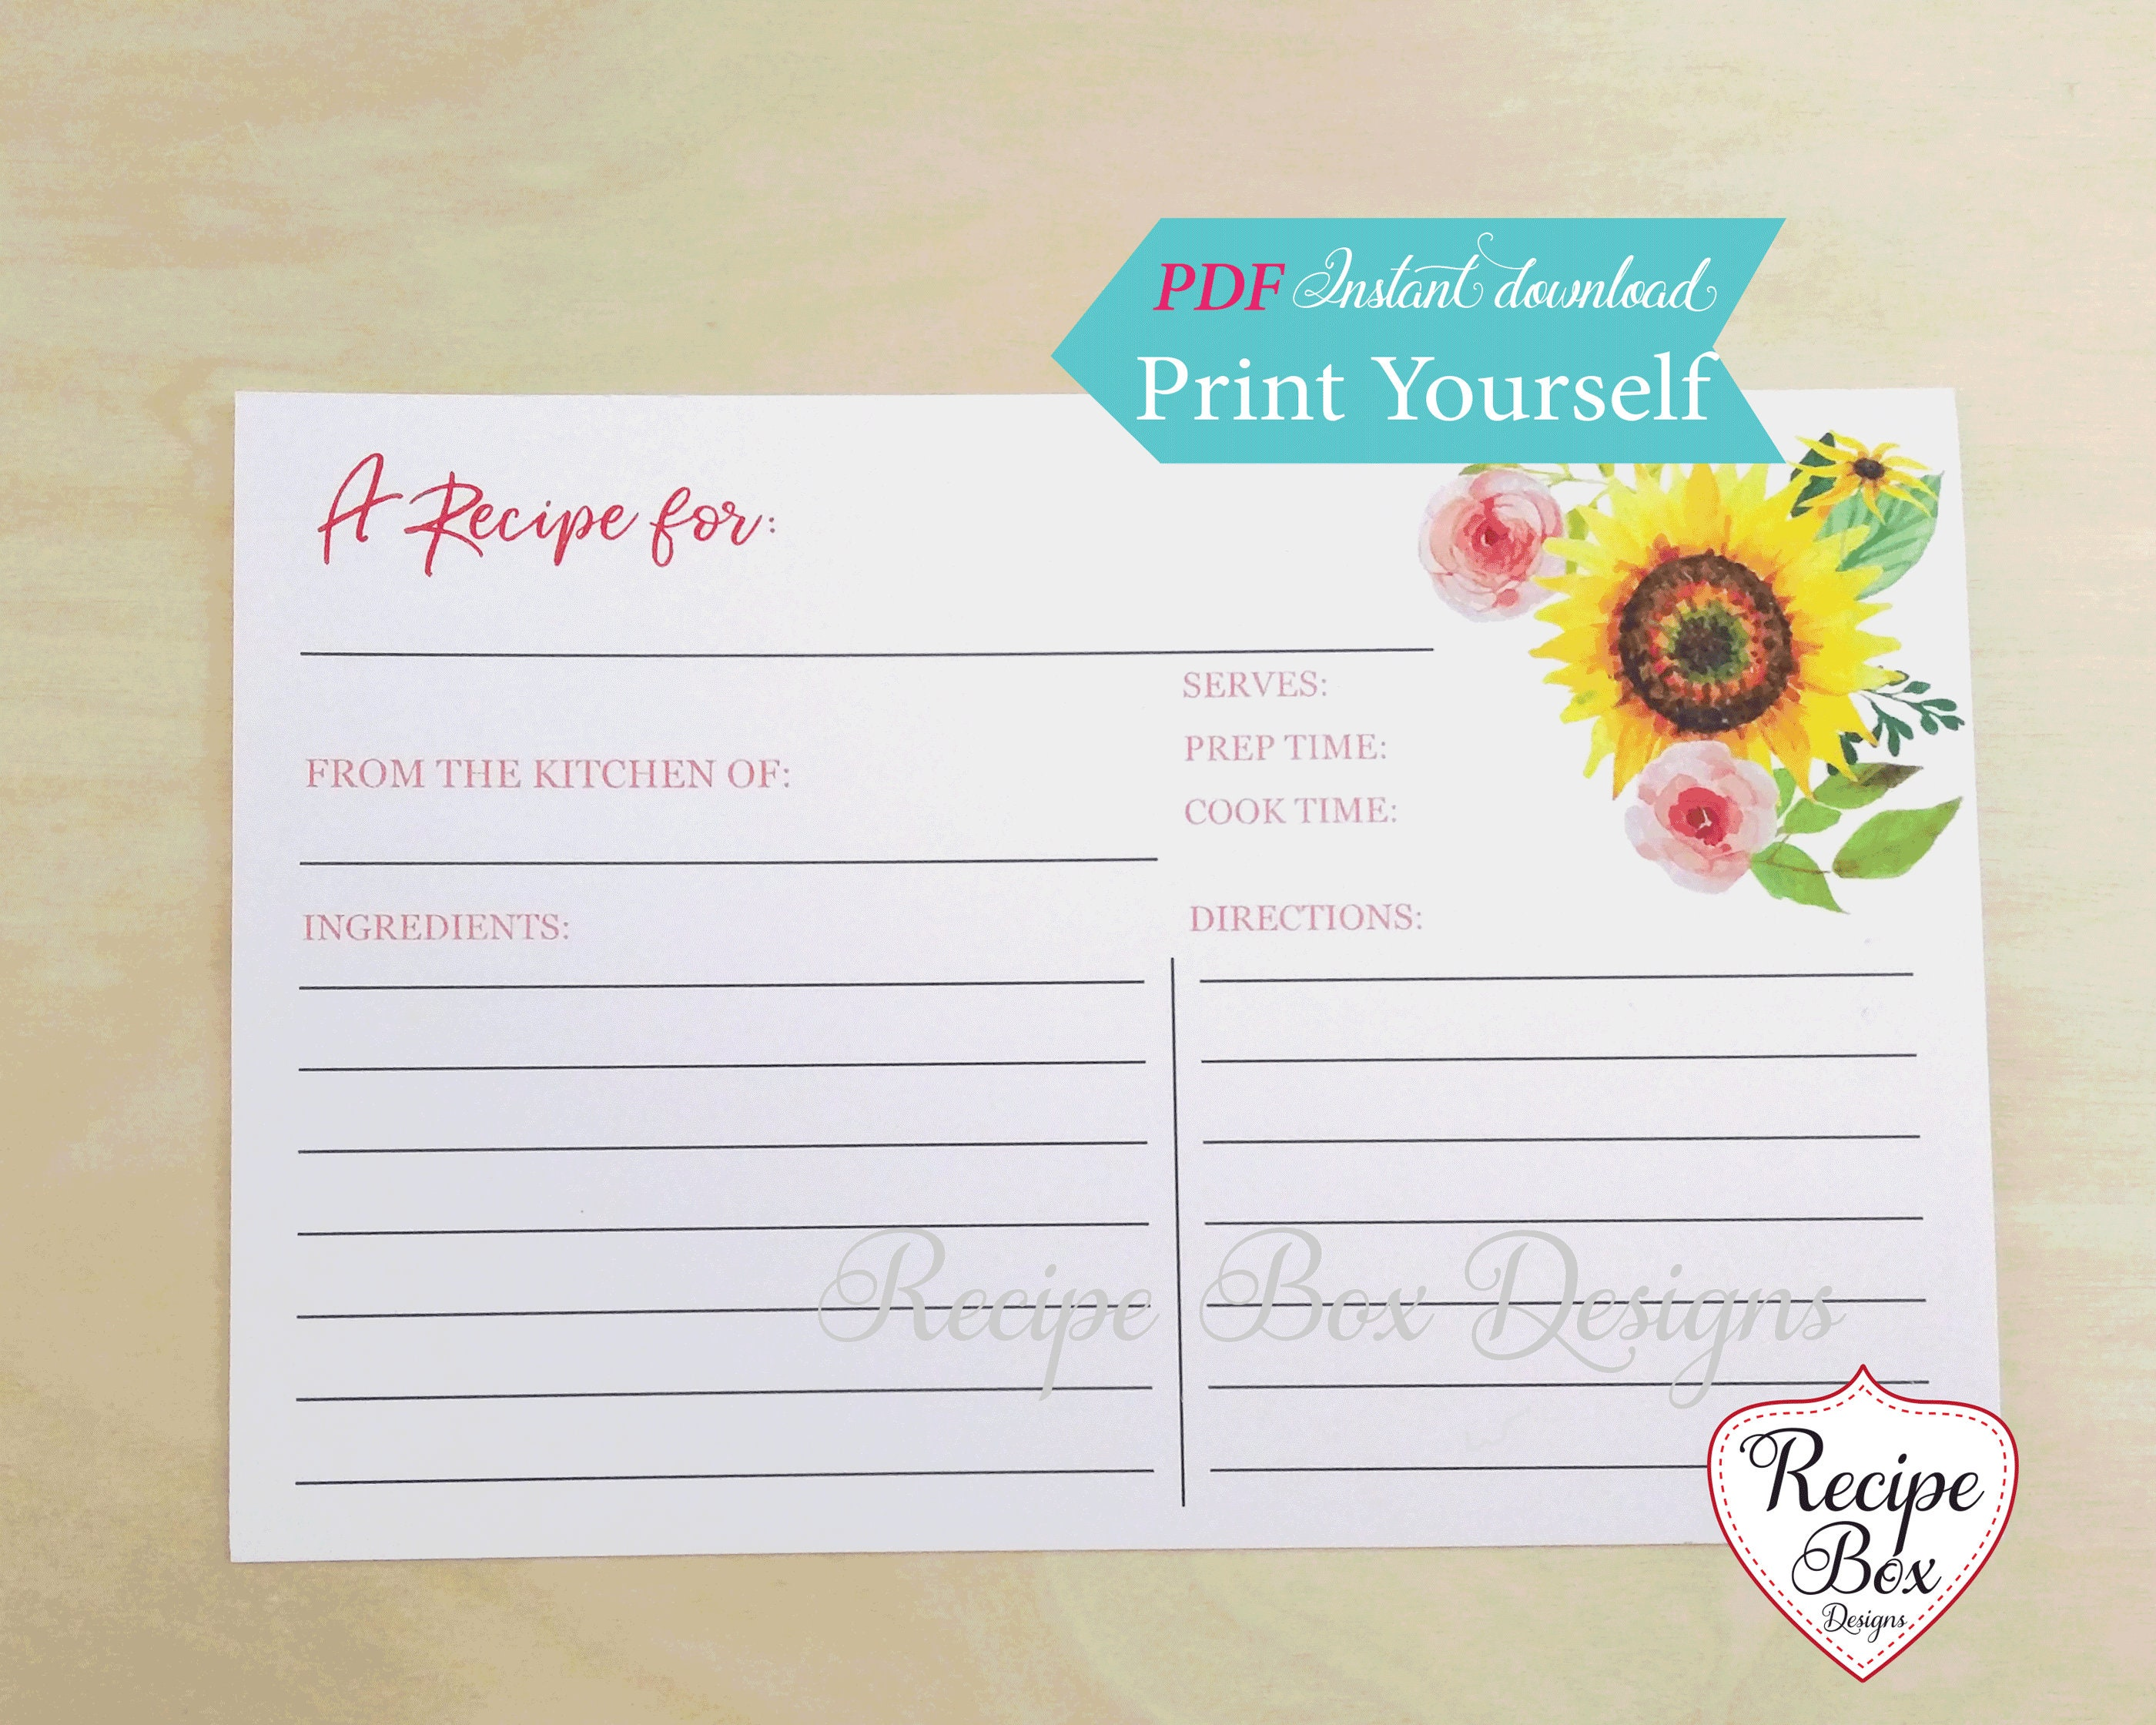 recipe for love sunflower recipe cards template printable tuscan theme bridal shower shower 4x6 recipe cards instant download diy